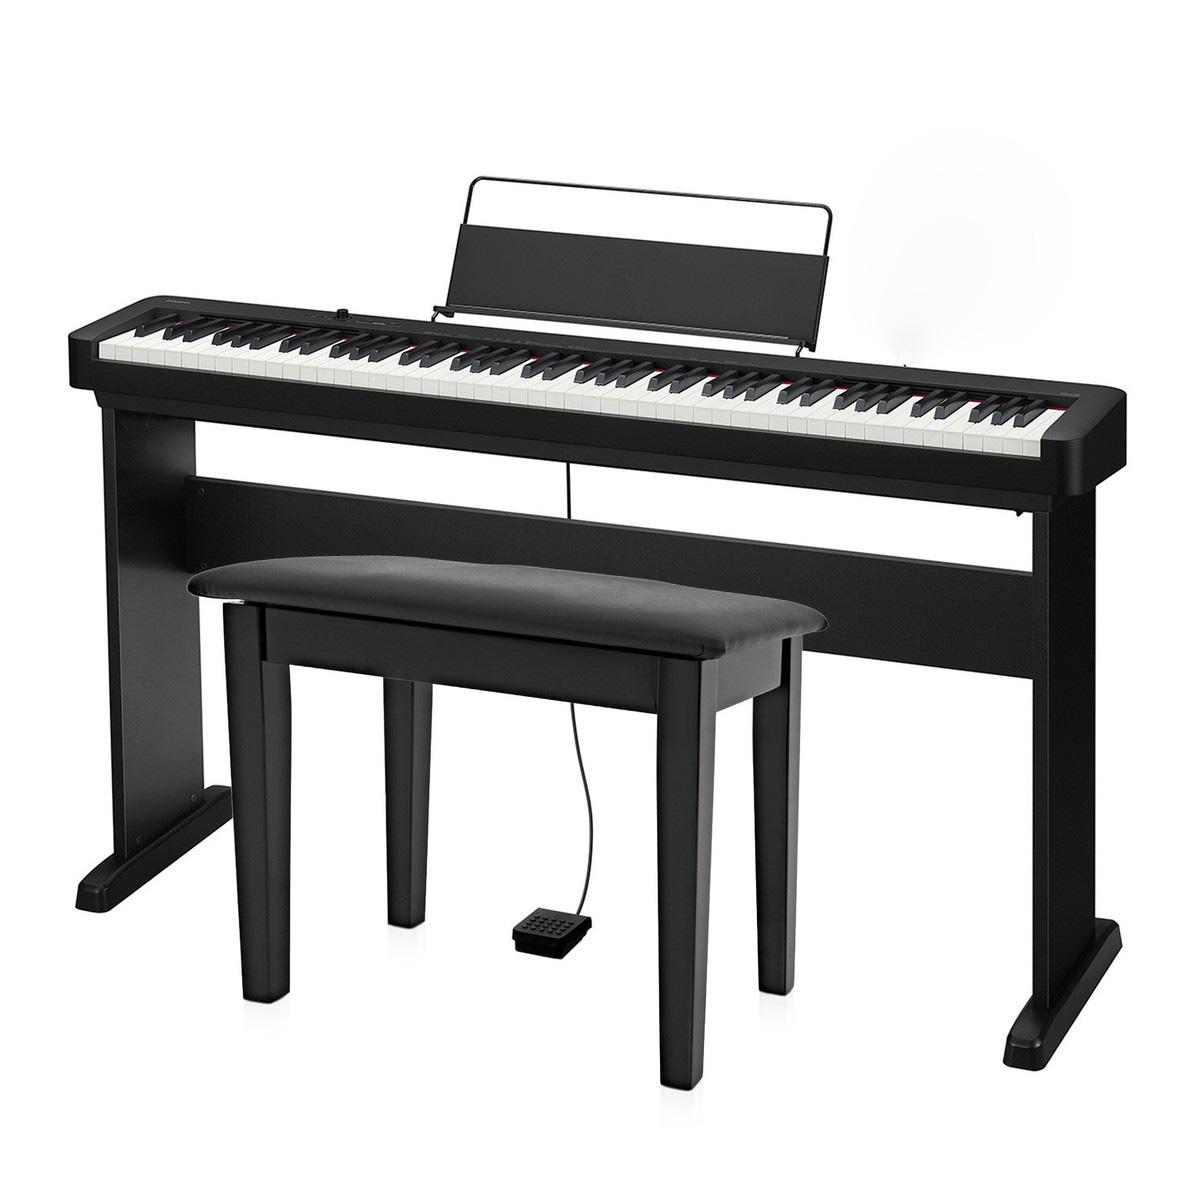 Piano Điện Tử Casio CDP-S100 New Model 2019